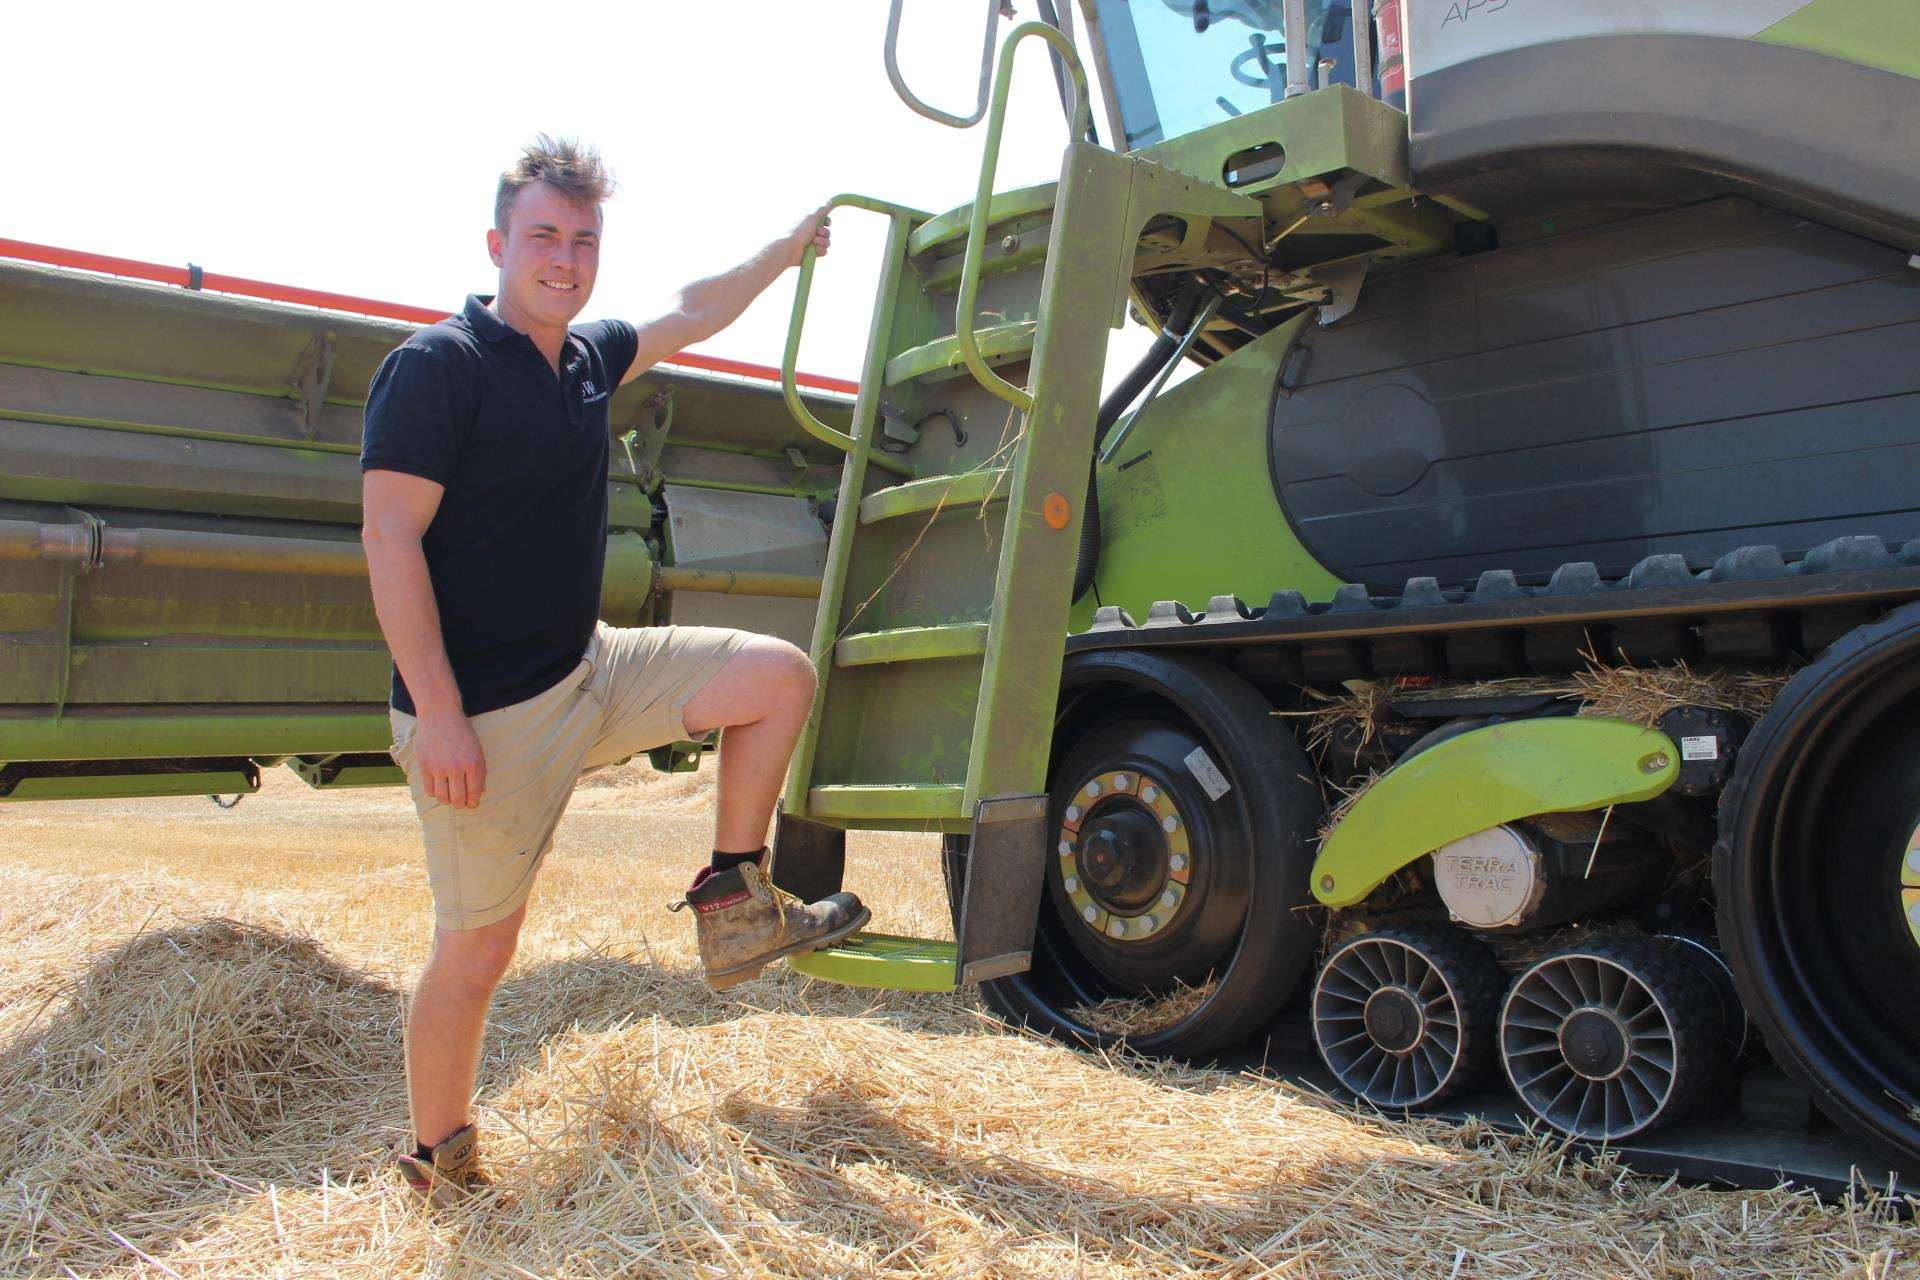 Harvesting time on the Isle of Sheppey with farmer James Attwood of SW Attwood and Partners and his state-of-the-art £400,000 combine harvester (3297691)